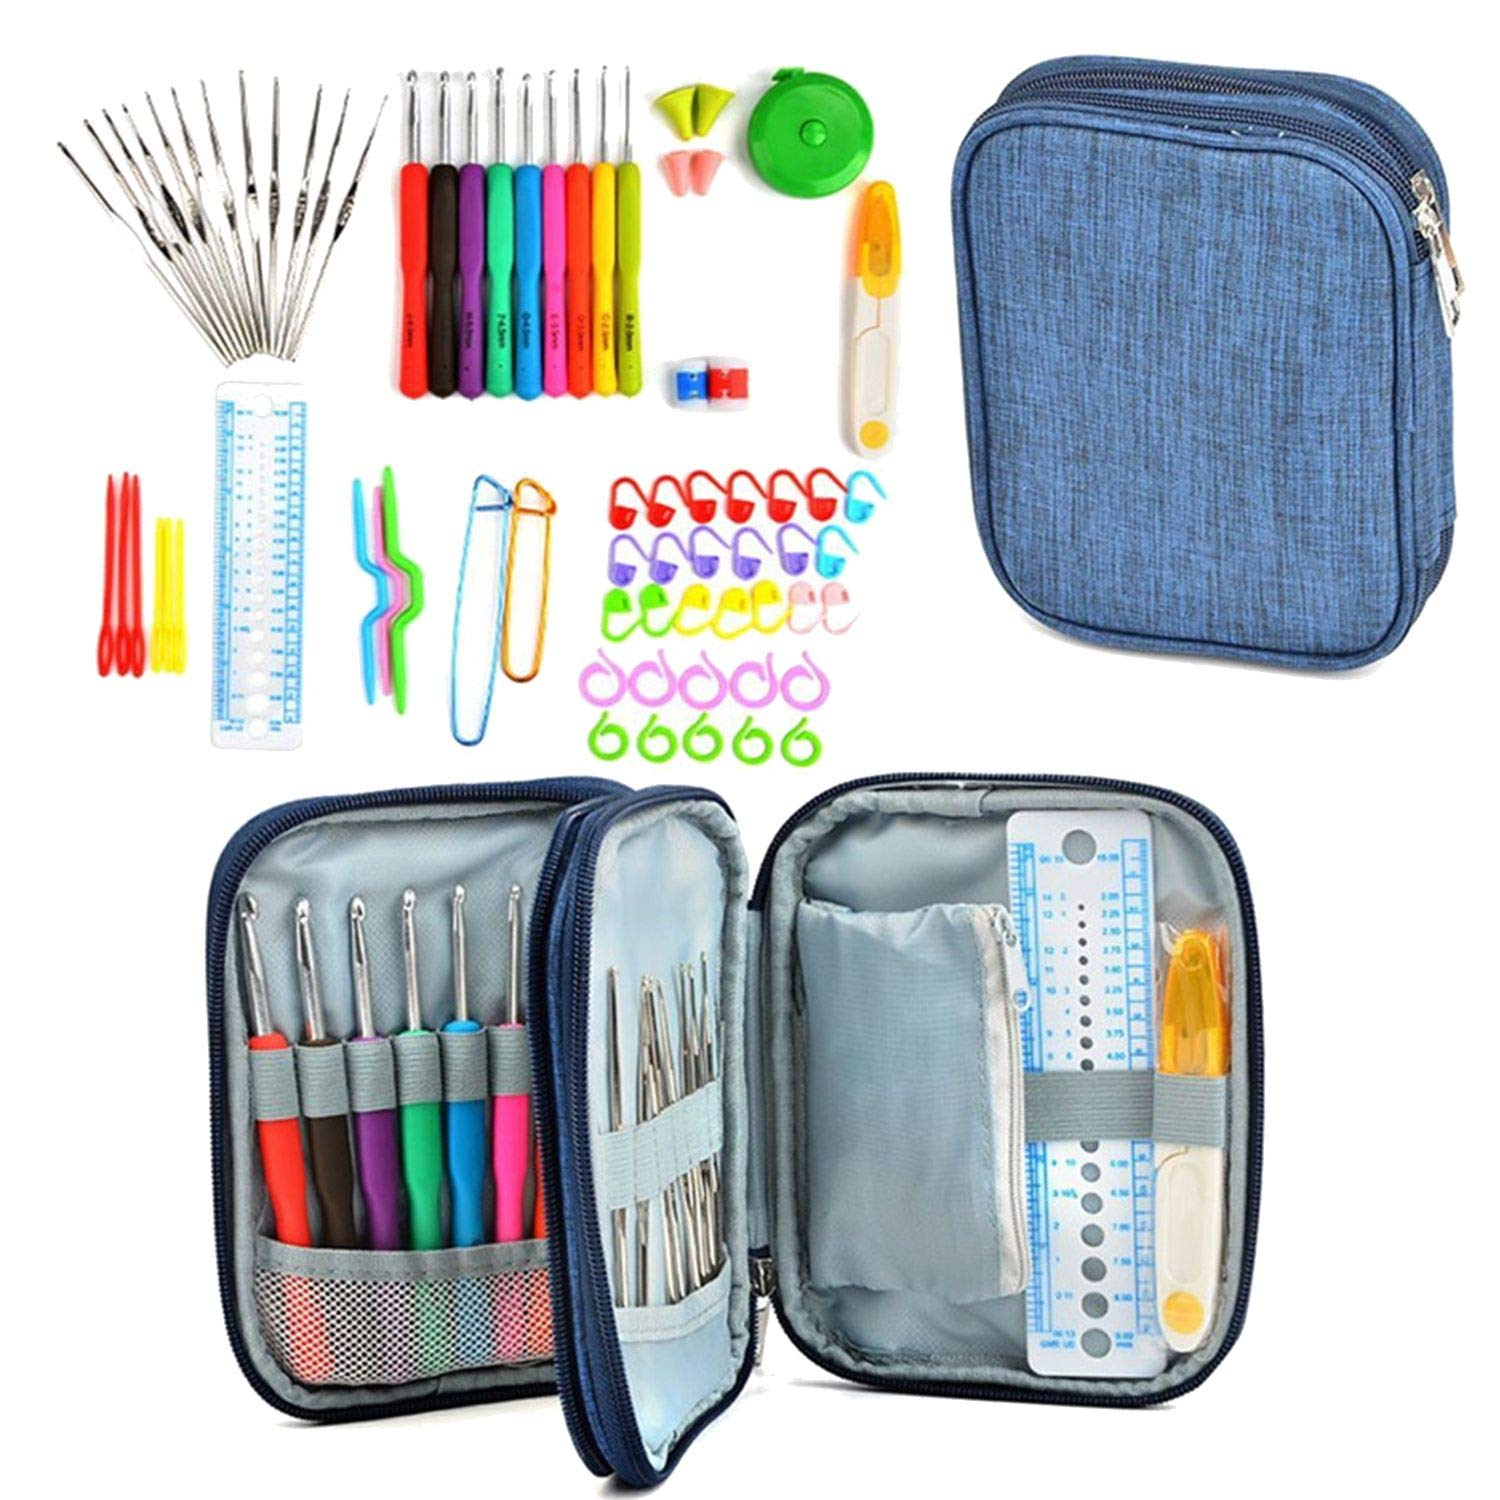 72 Pcs Kit Yarn Knitting Needle Sewing Tool Crochet Hook Soft Handle Weave Set with Bag Craft Aluminum DIY Ergonomic Portable